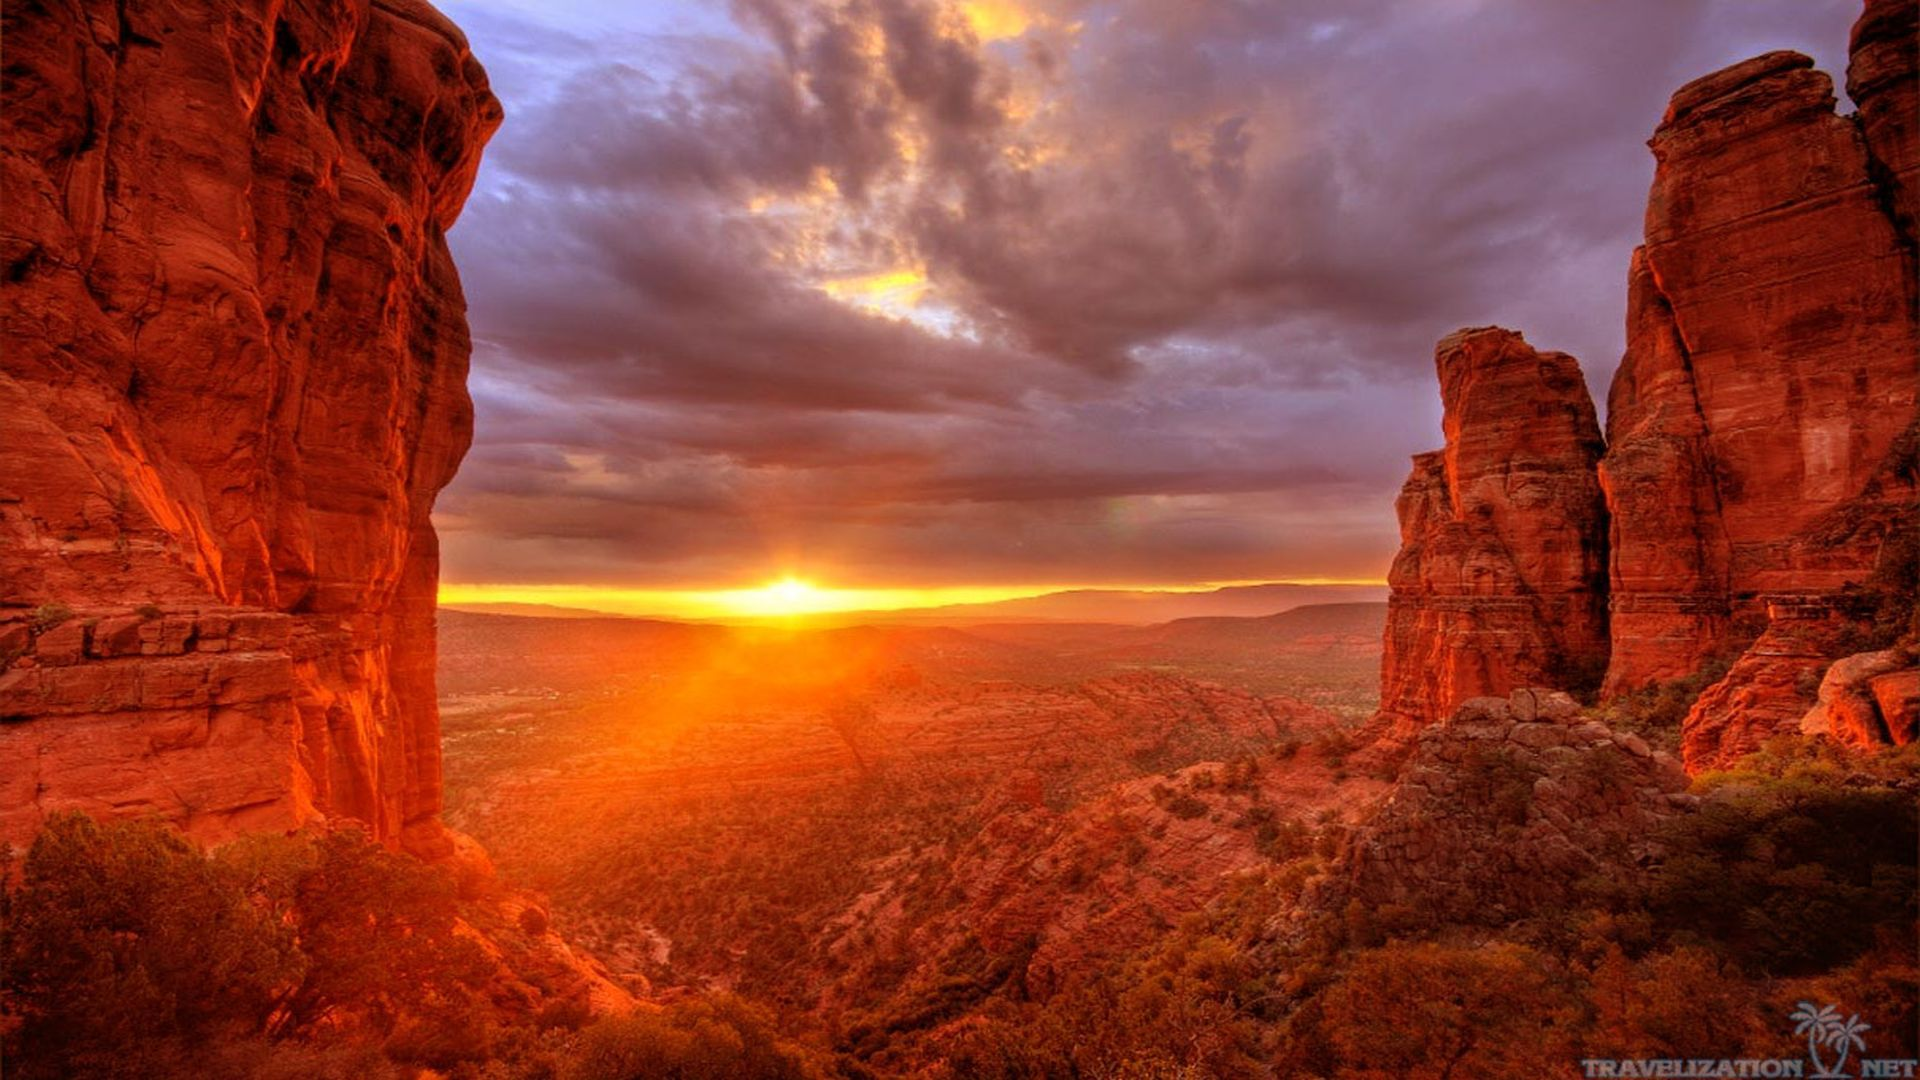 Arizona Sunset Pictures wallpaper 1920x1080 79403